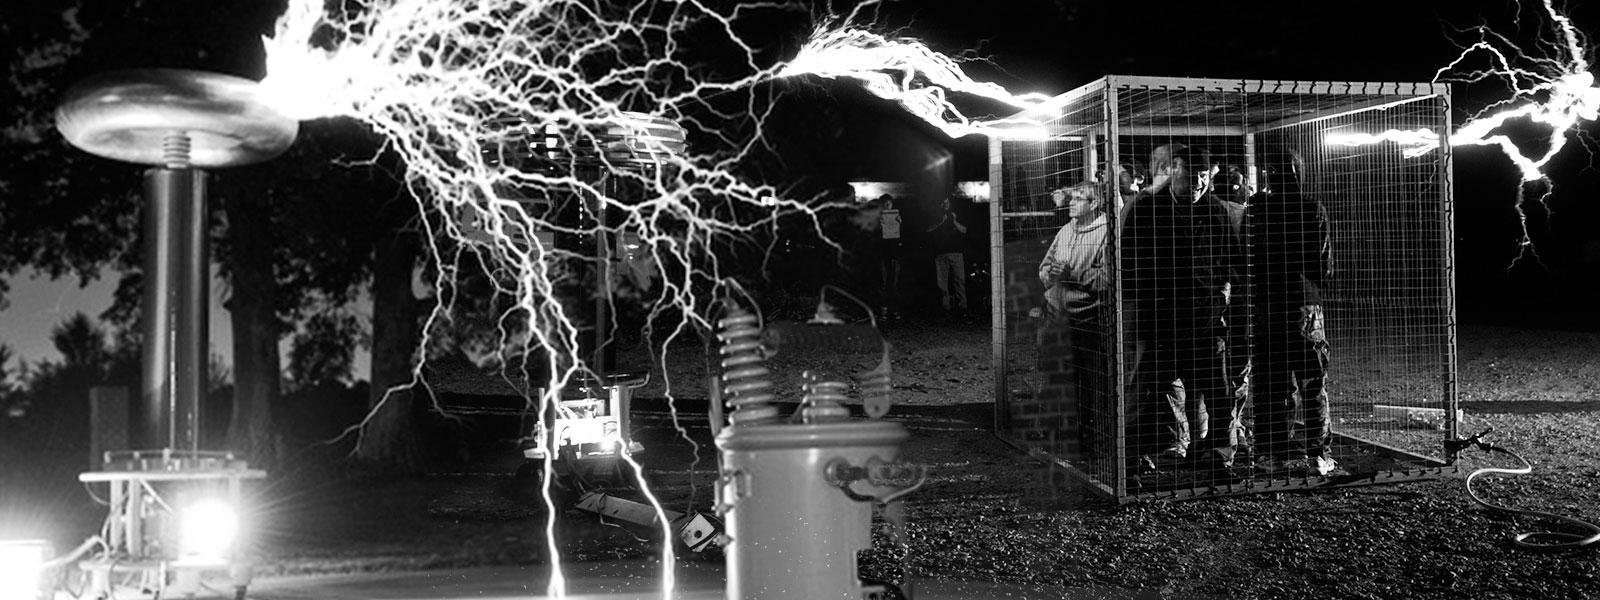 Tesla coils and The Cage of Death